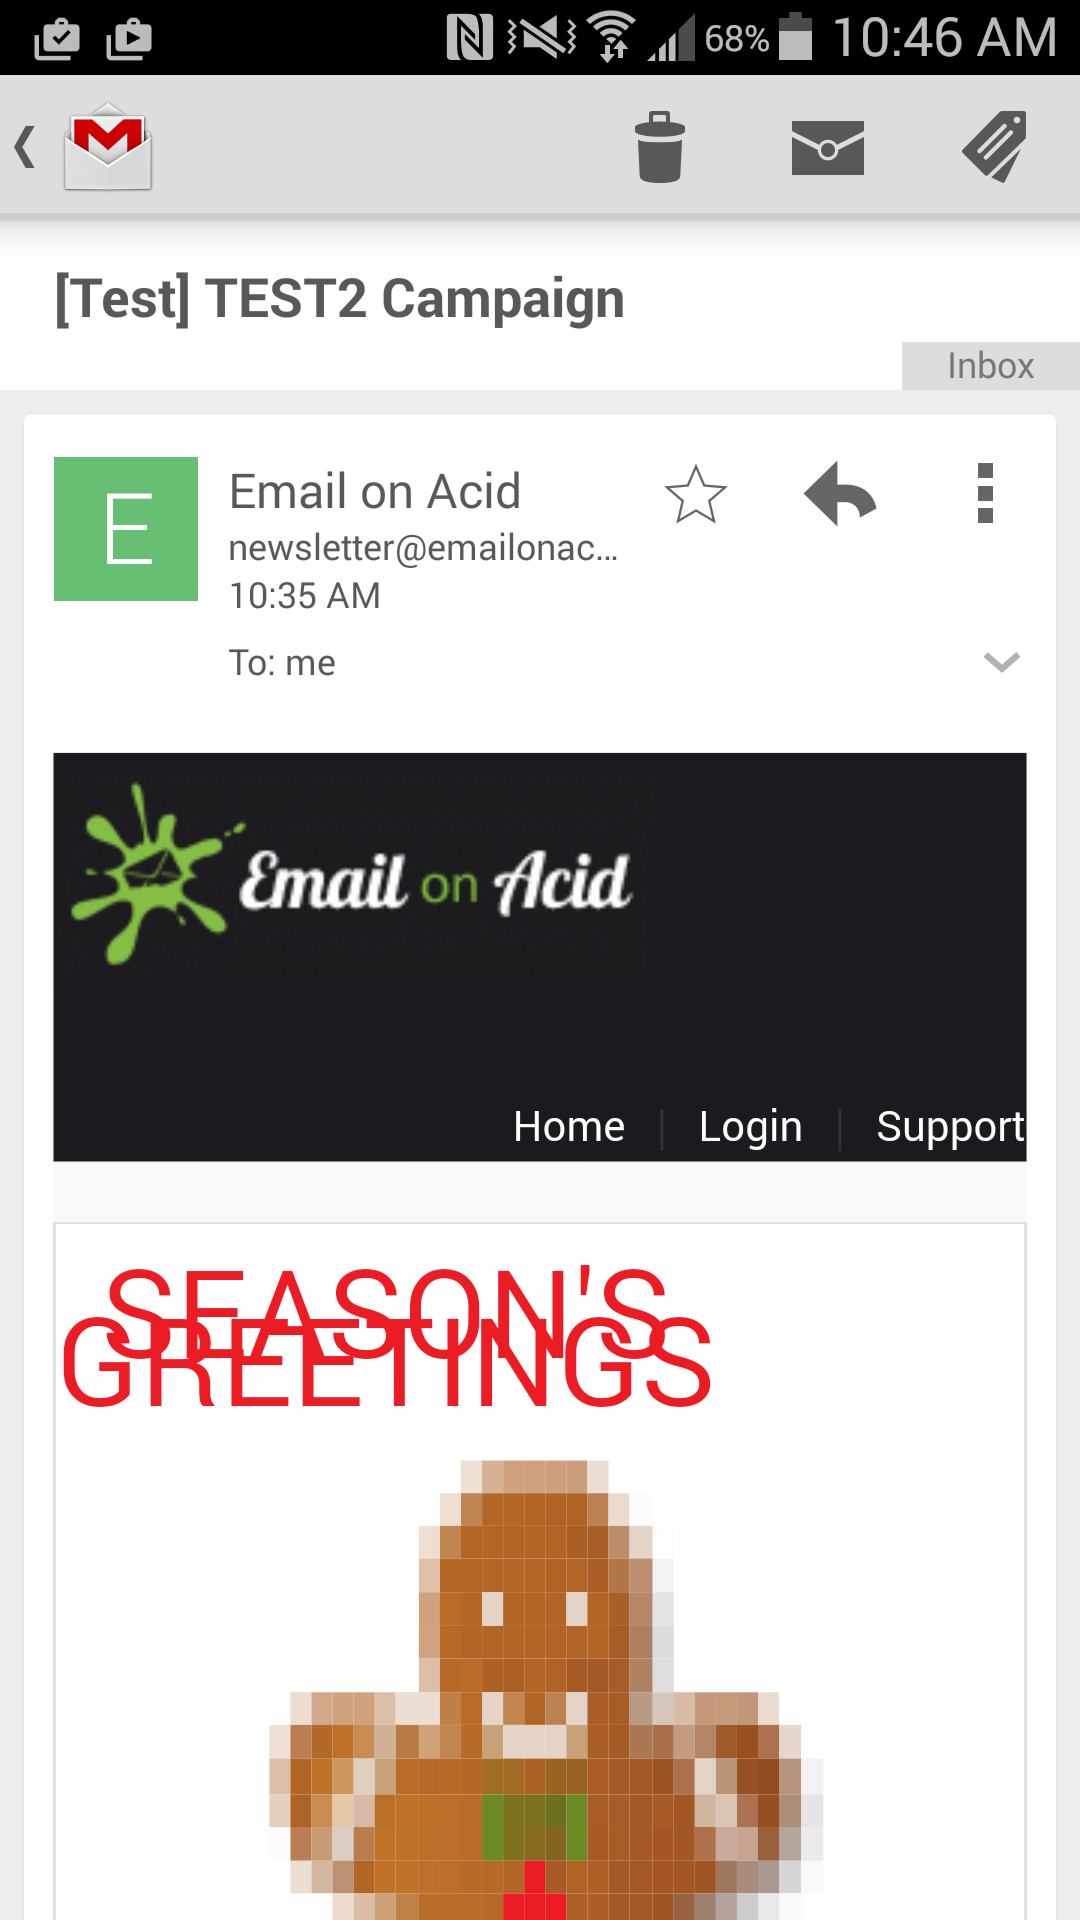 Messed up Email on Acid holiday newsletter